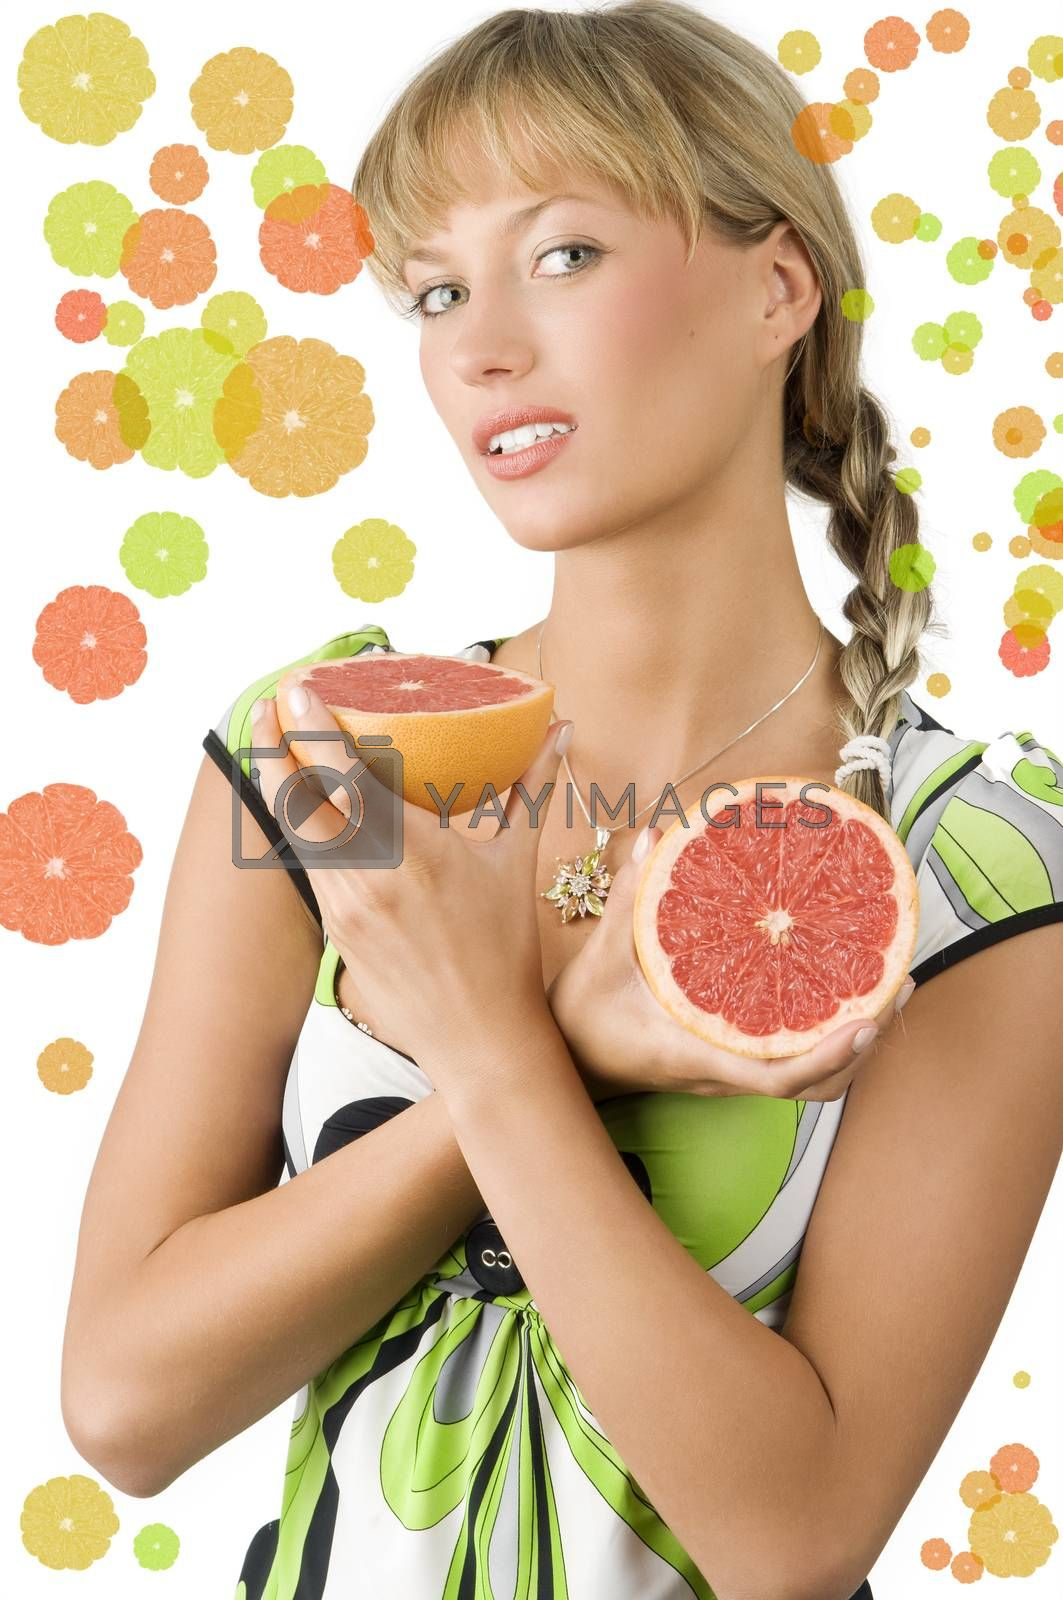 Royalty free image of grapefruit and braid by fotoCD